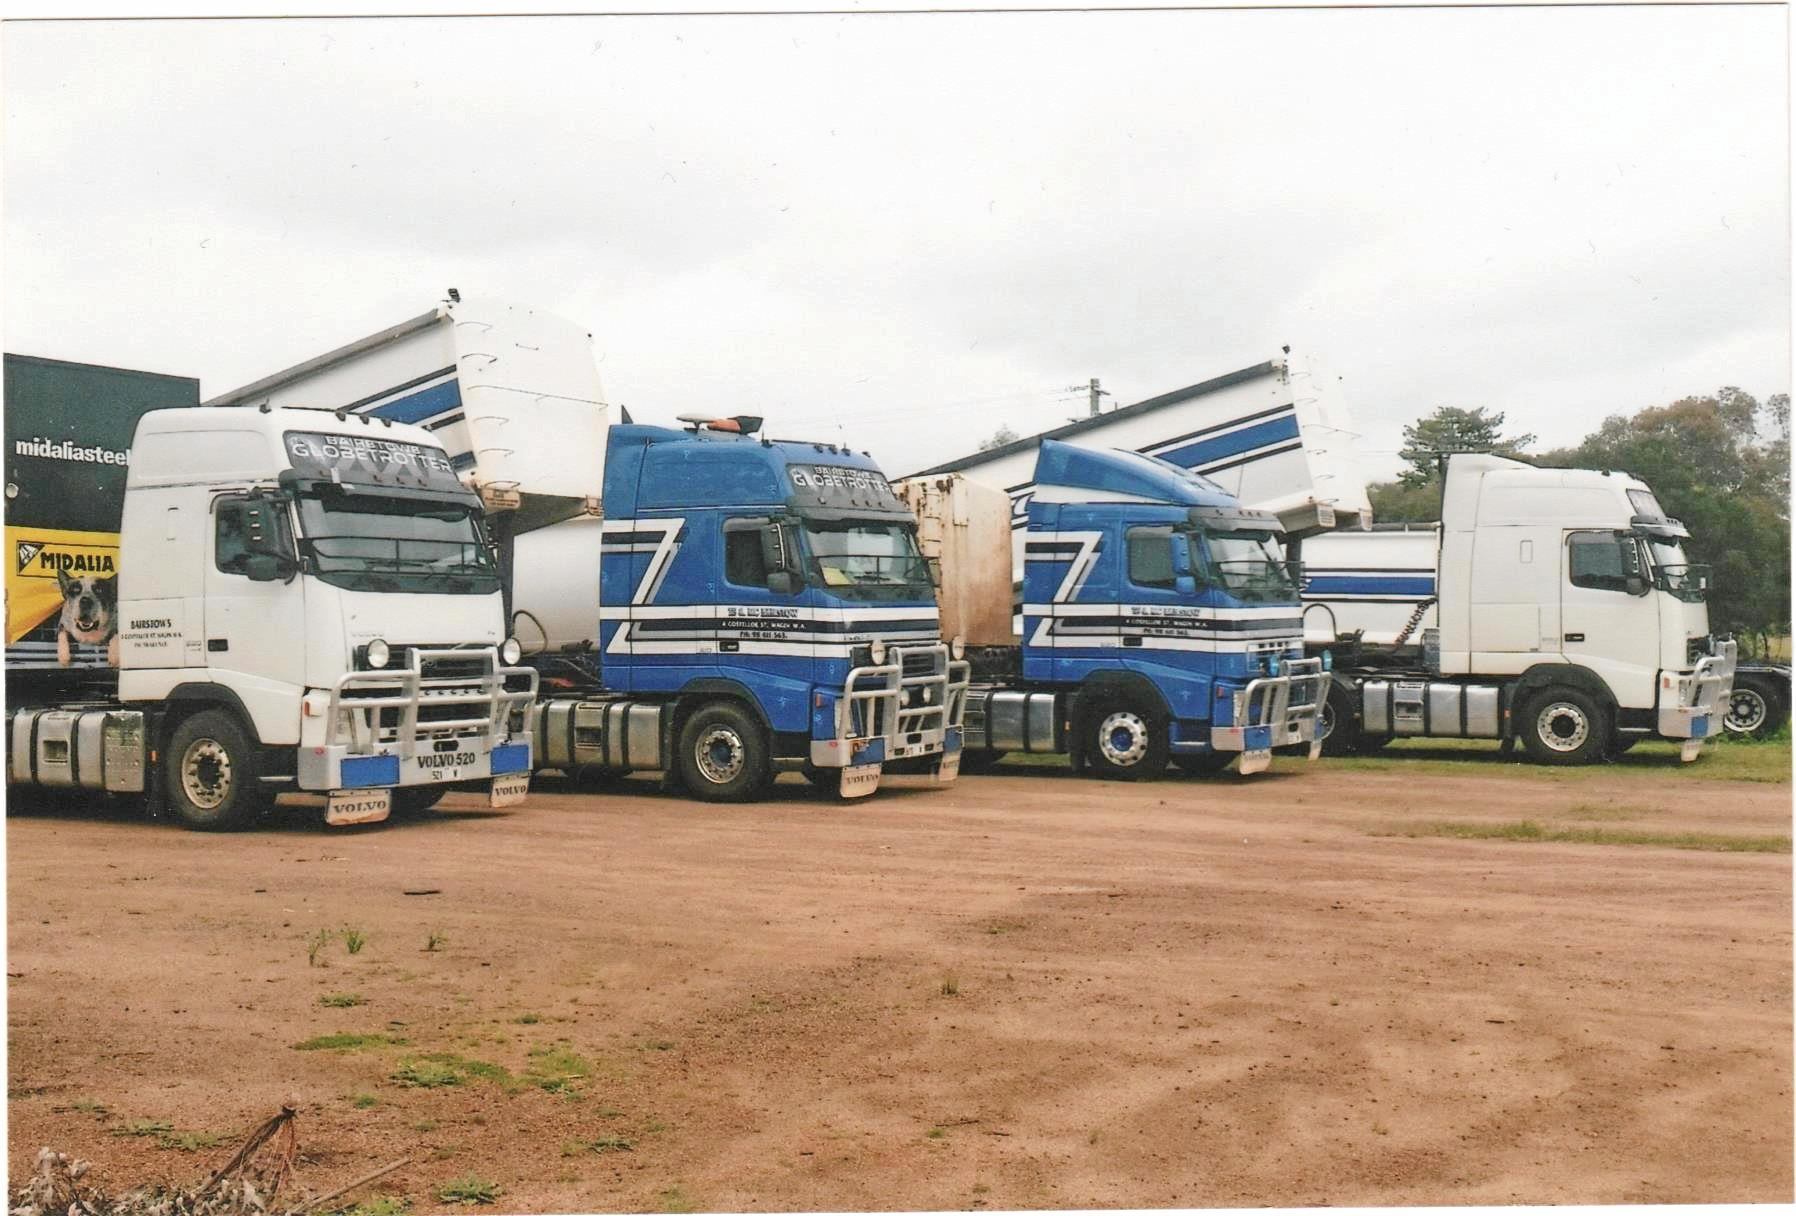 Some of the trucks in the Bairstows' Volvo fleet.